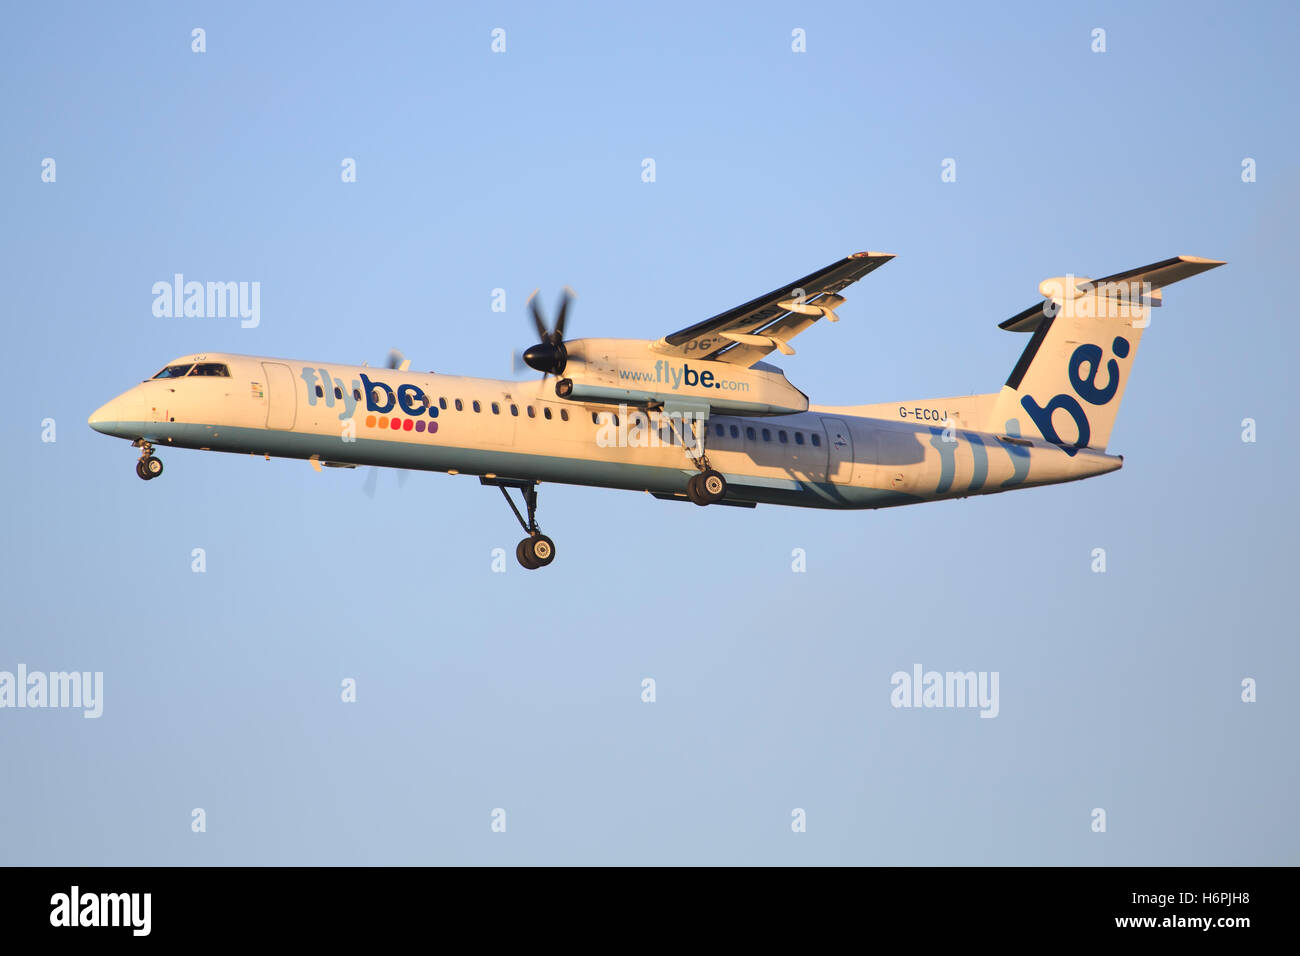 Flybe dash at Amsterdam - Stock Image